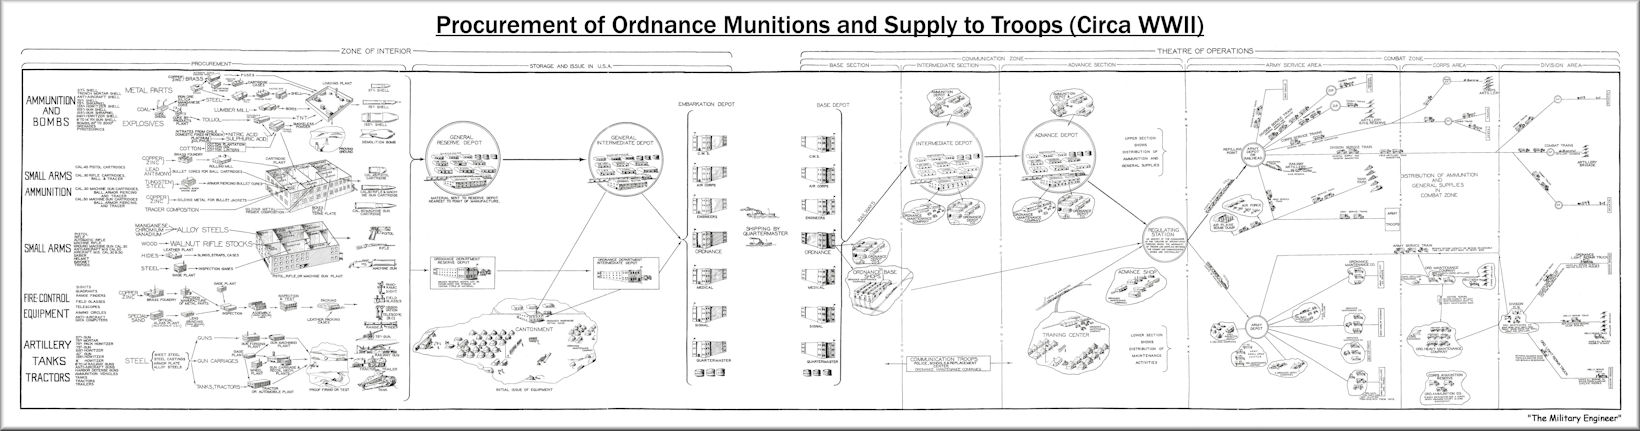 Procurement of Ordnance Munitions and Supply to Troops (Circa WWWII)